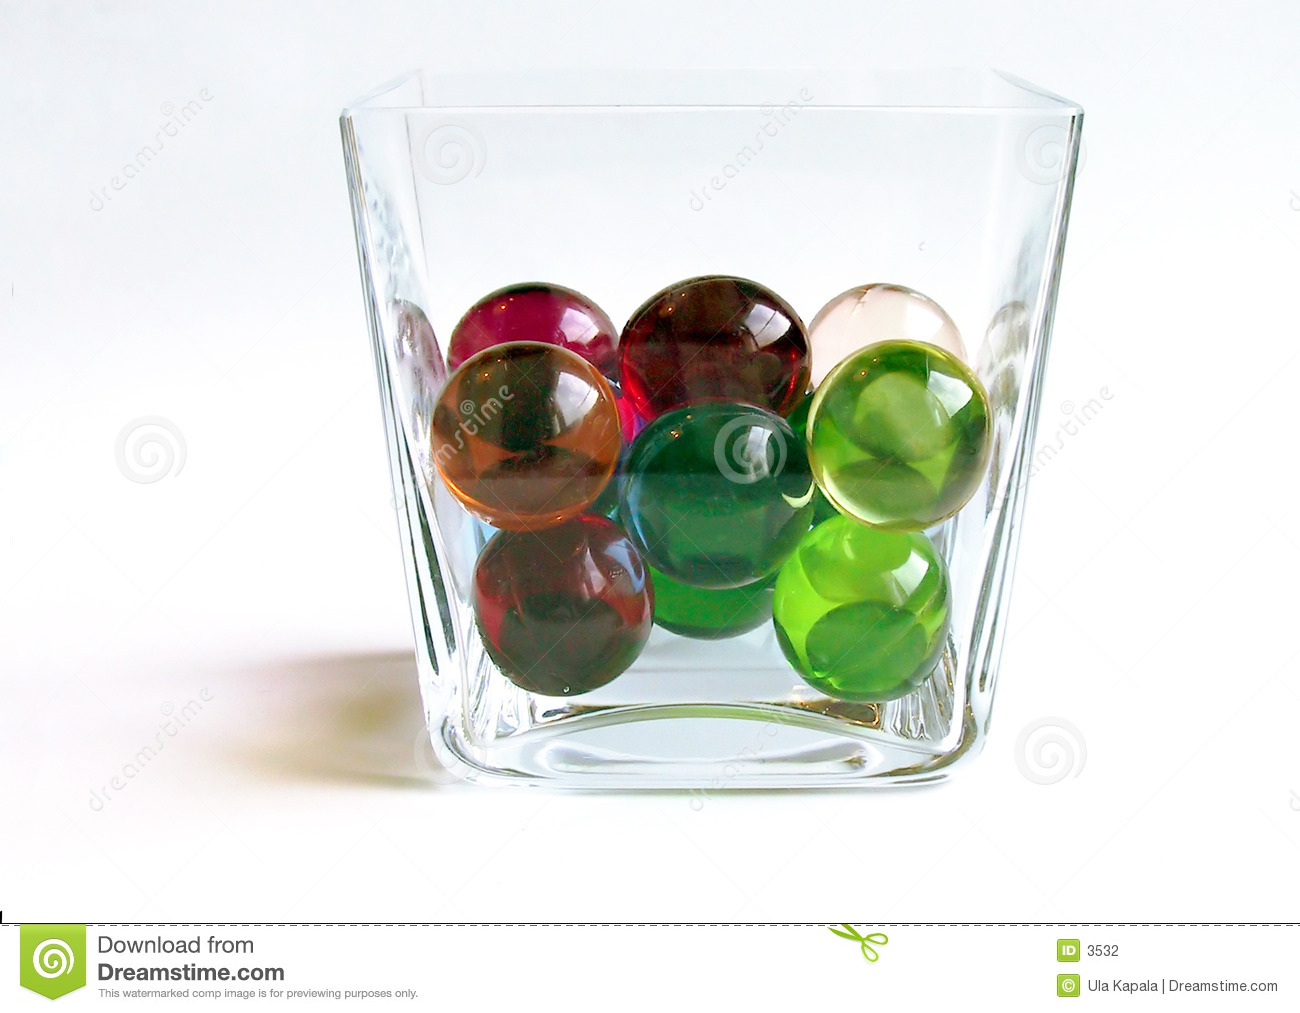 Bath balls in a container